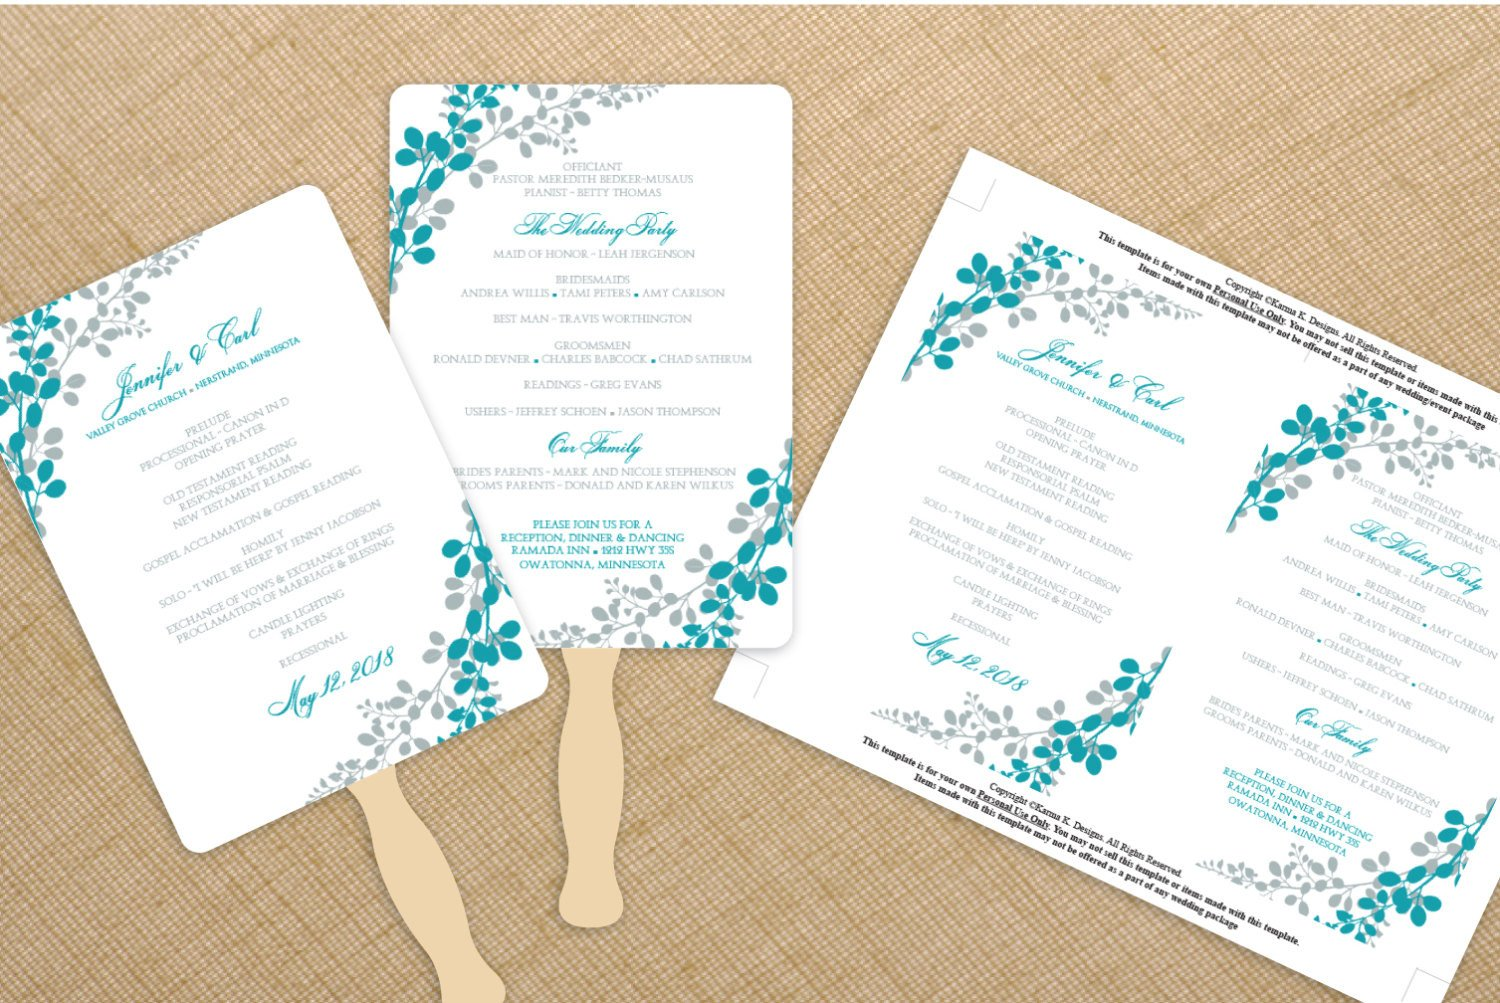 Wedding Programs Fans Templates Wedding Fan Program Template Download by Diyweddingtemplates